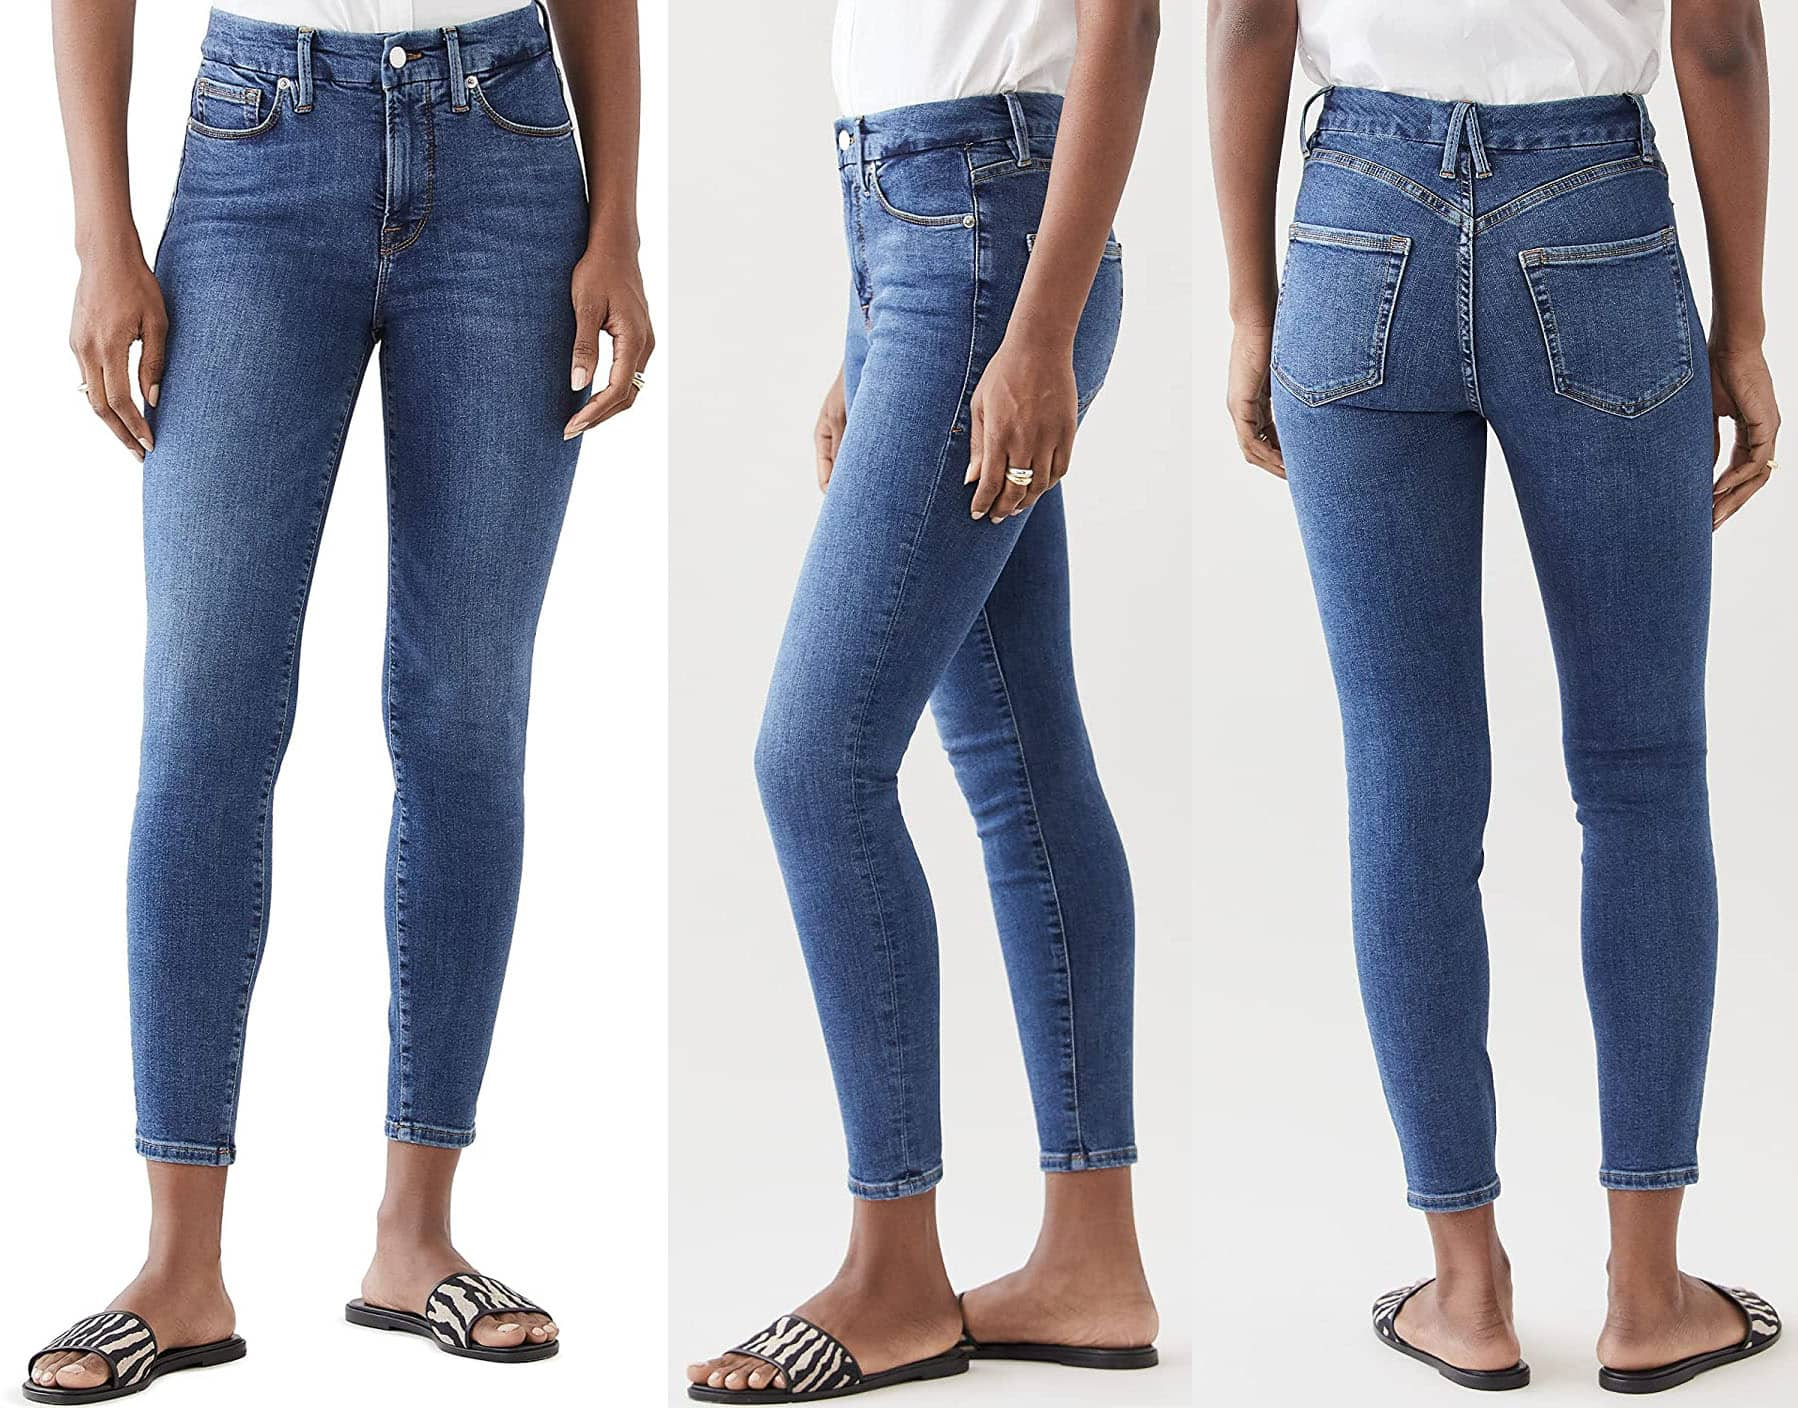 Good American's Good Legs Crop Extreme V is the ultimate skinny sculpting jean, featuring extra stretch, flat tummy tech, and a gap-proof waistband